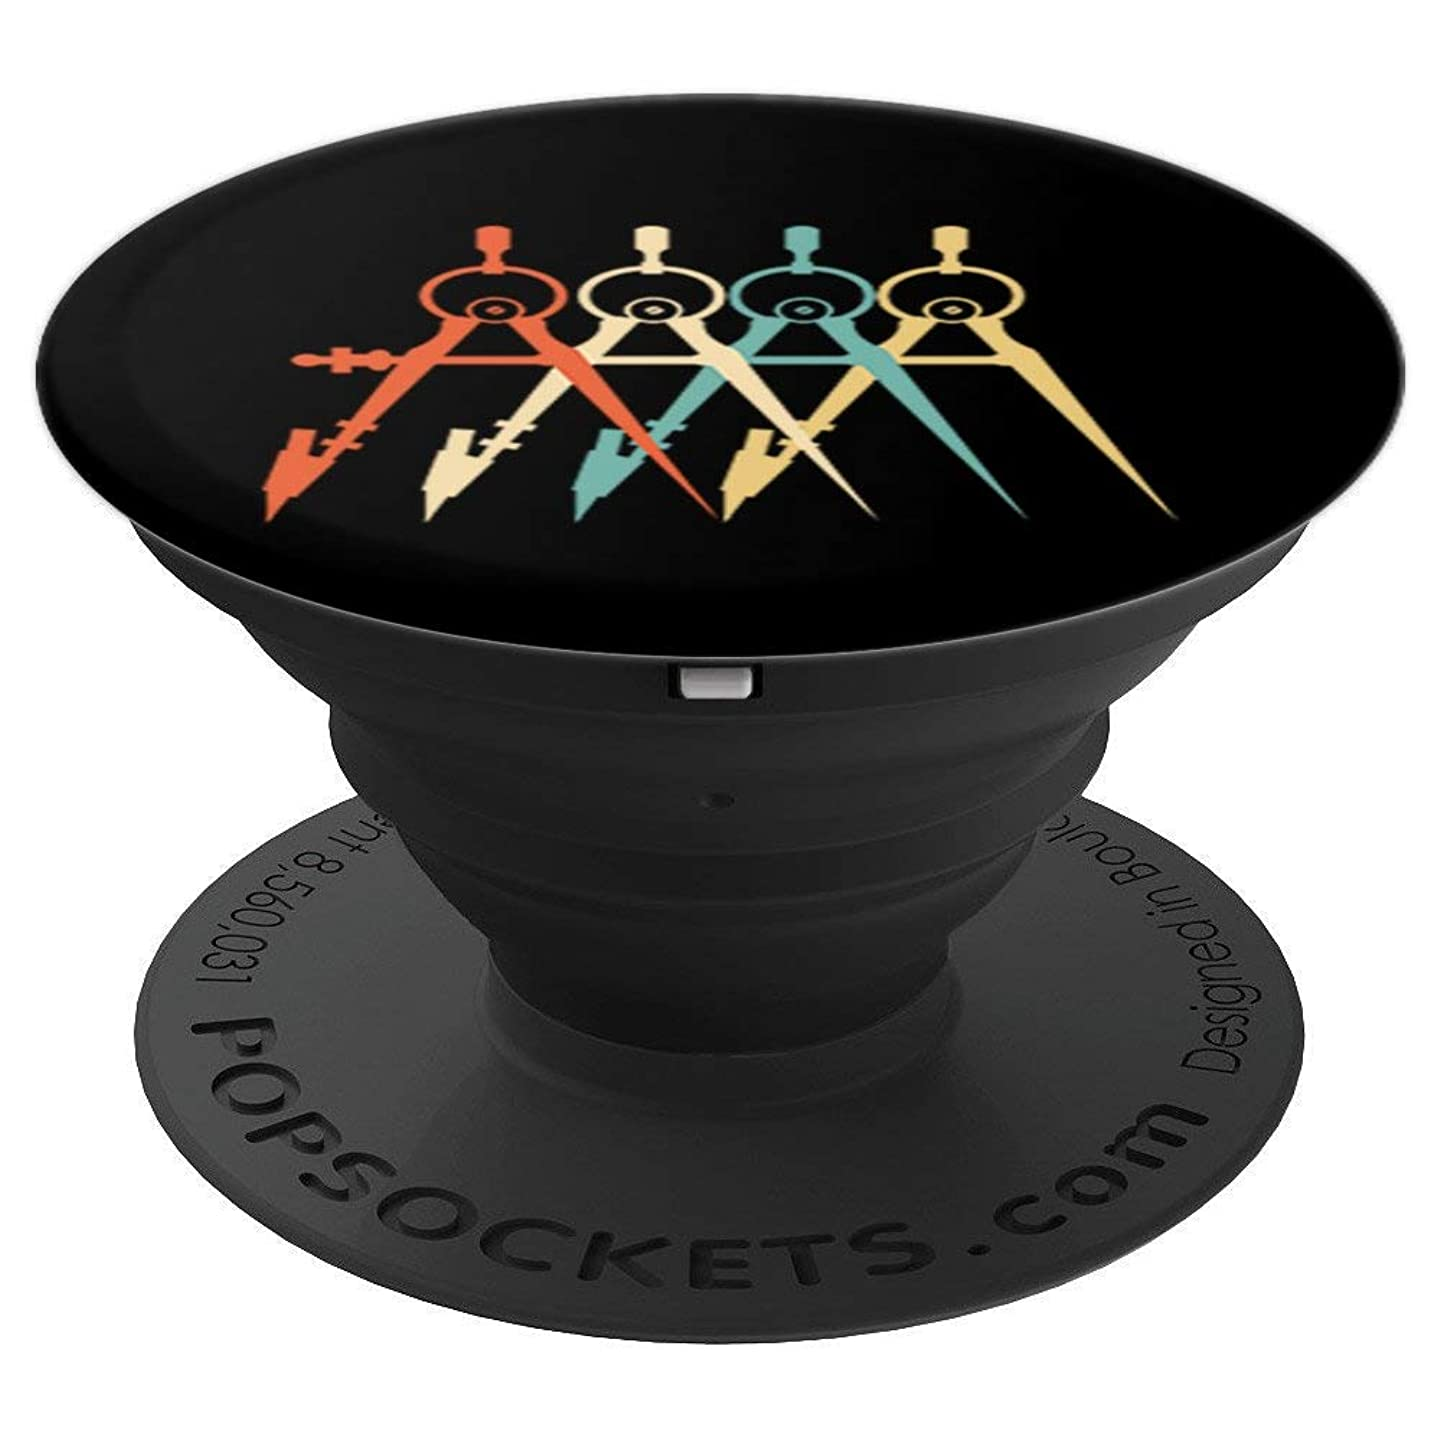 Architects Tools Tee vintage architecture Men Women - PopSockets Grip and Stand for Phones and Tablets